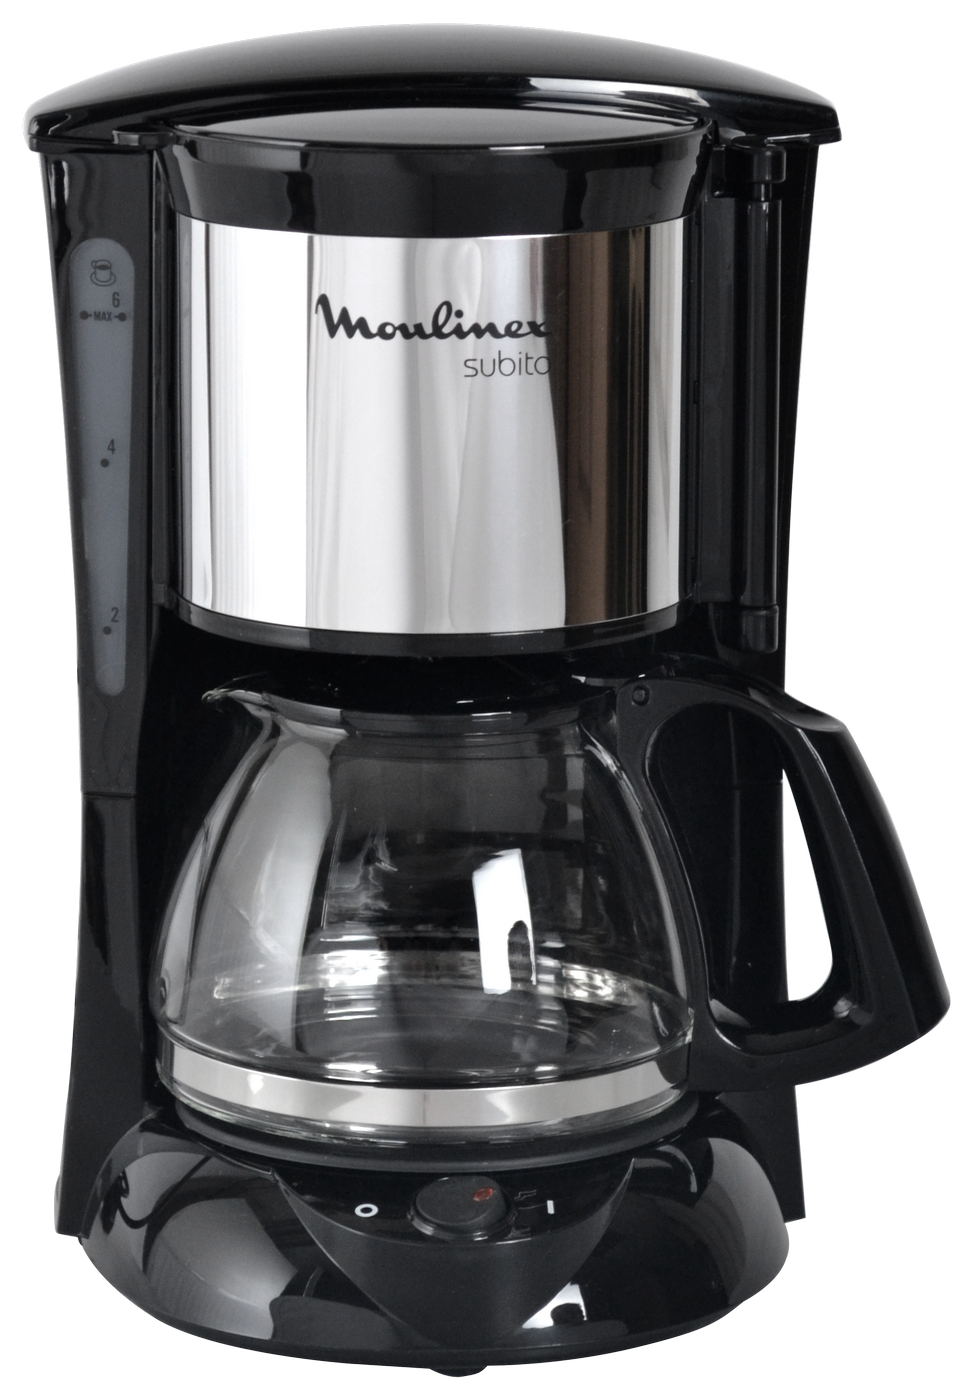 Coffee machine png. Image purepng free transparent